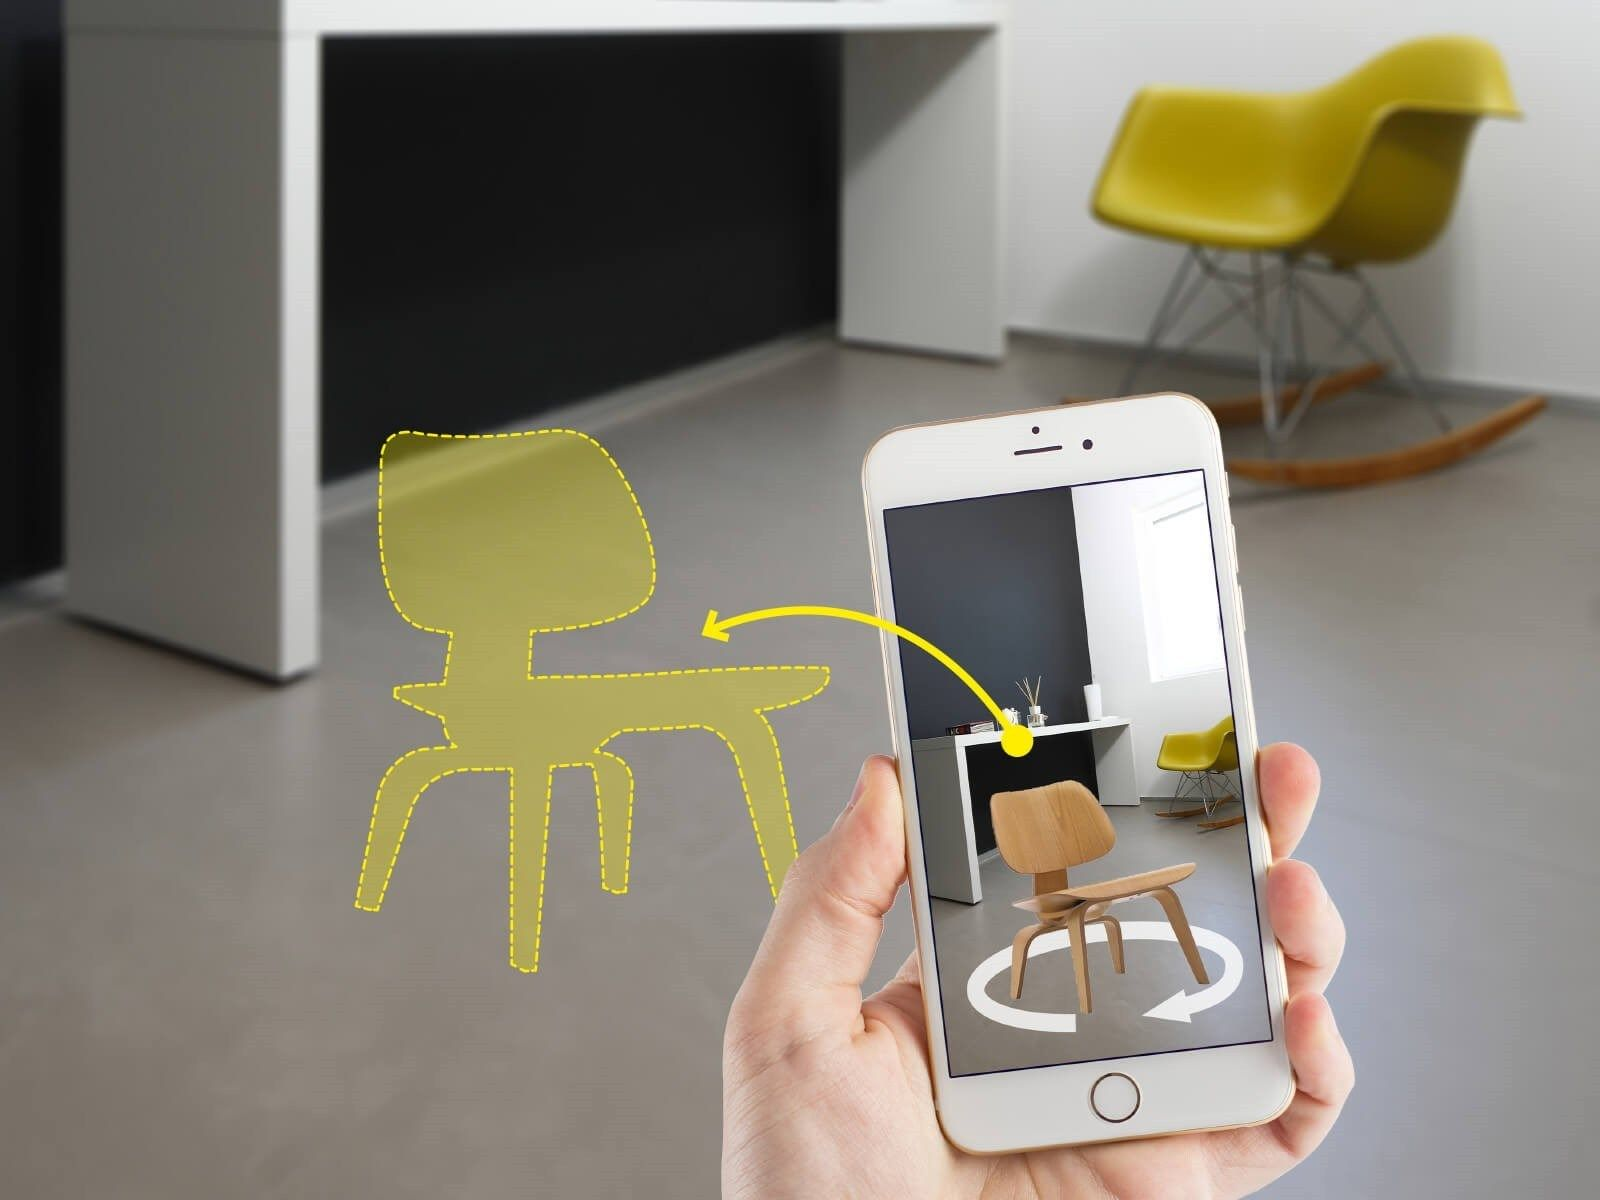 ready for the future interior design meets Augmented Reality